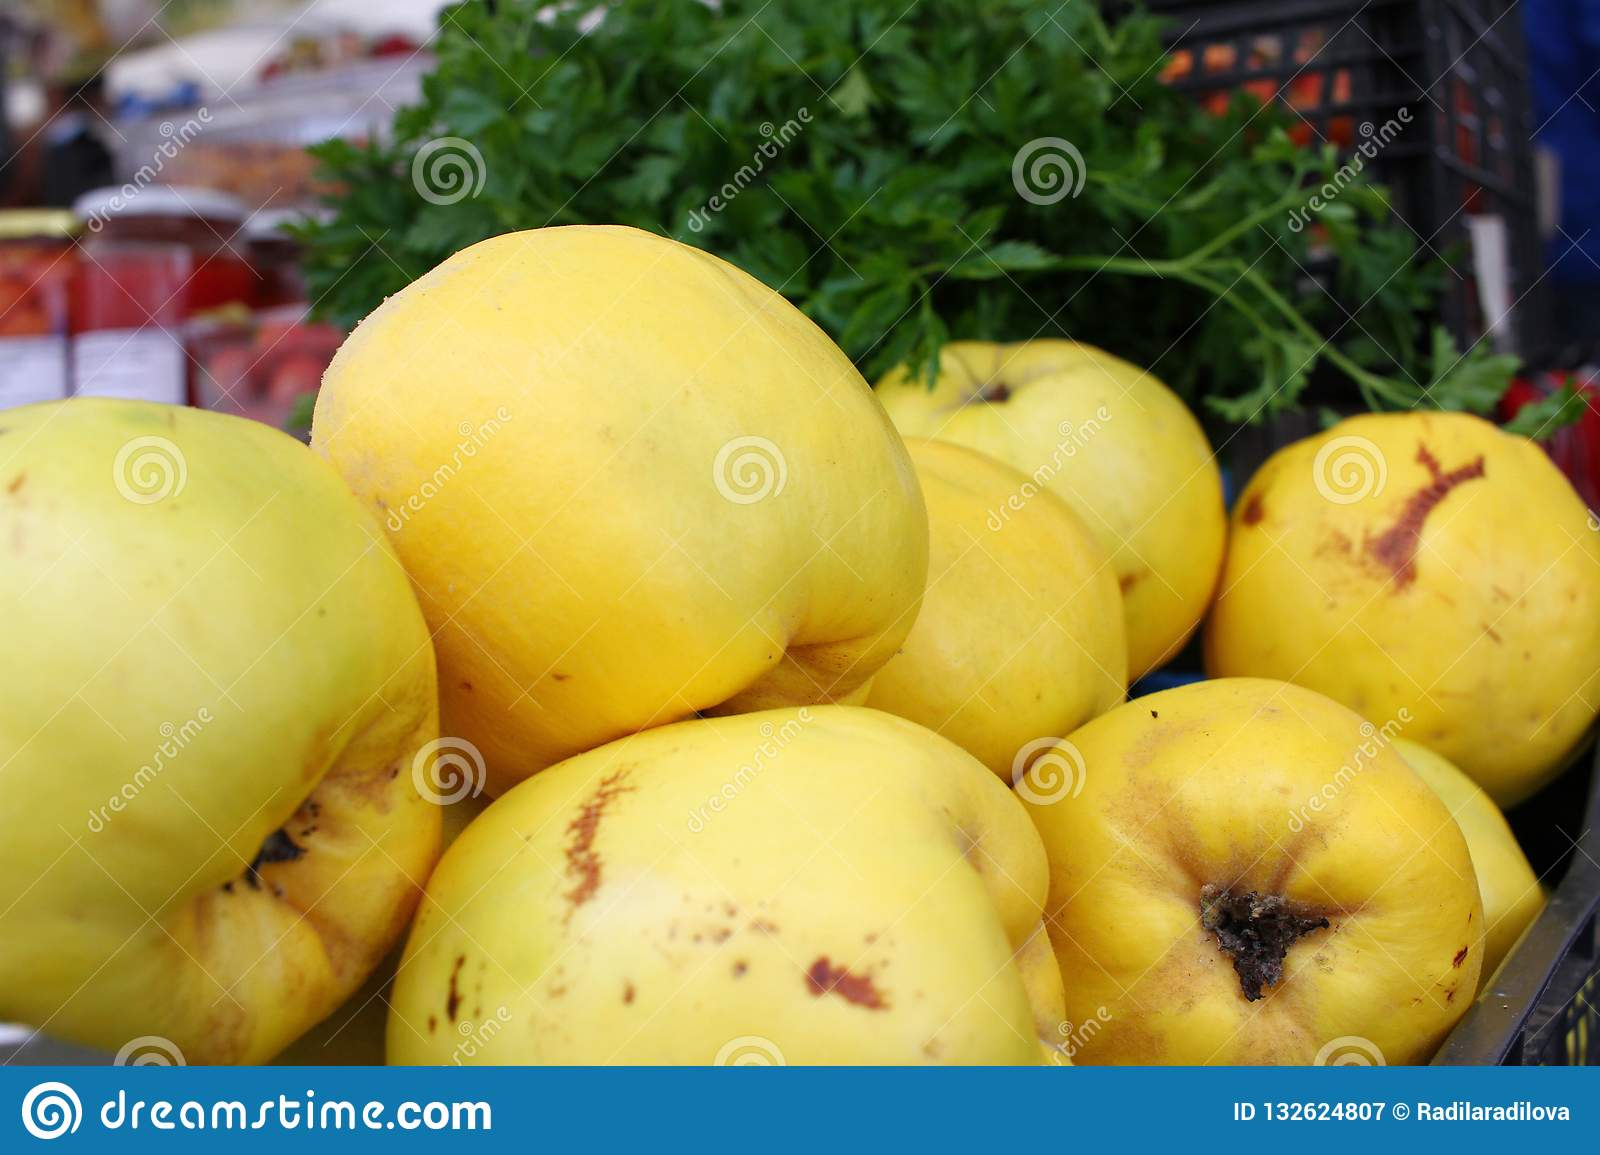 Quince. Fresh organic yellow quince background. Fruits pattern. Quince wallpaper. Healthy eating concept